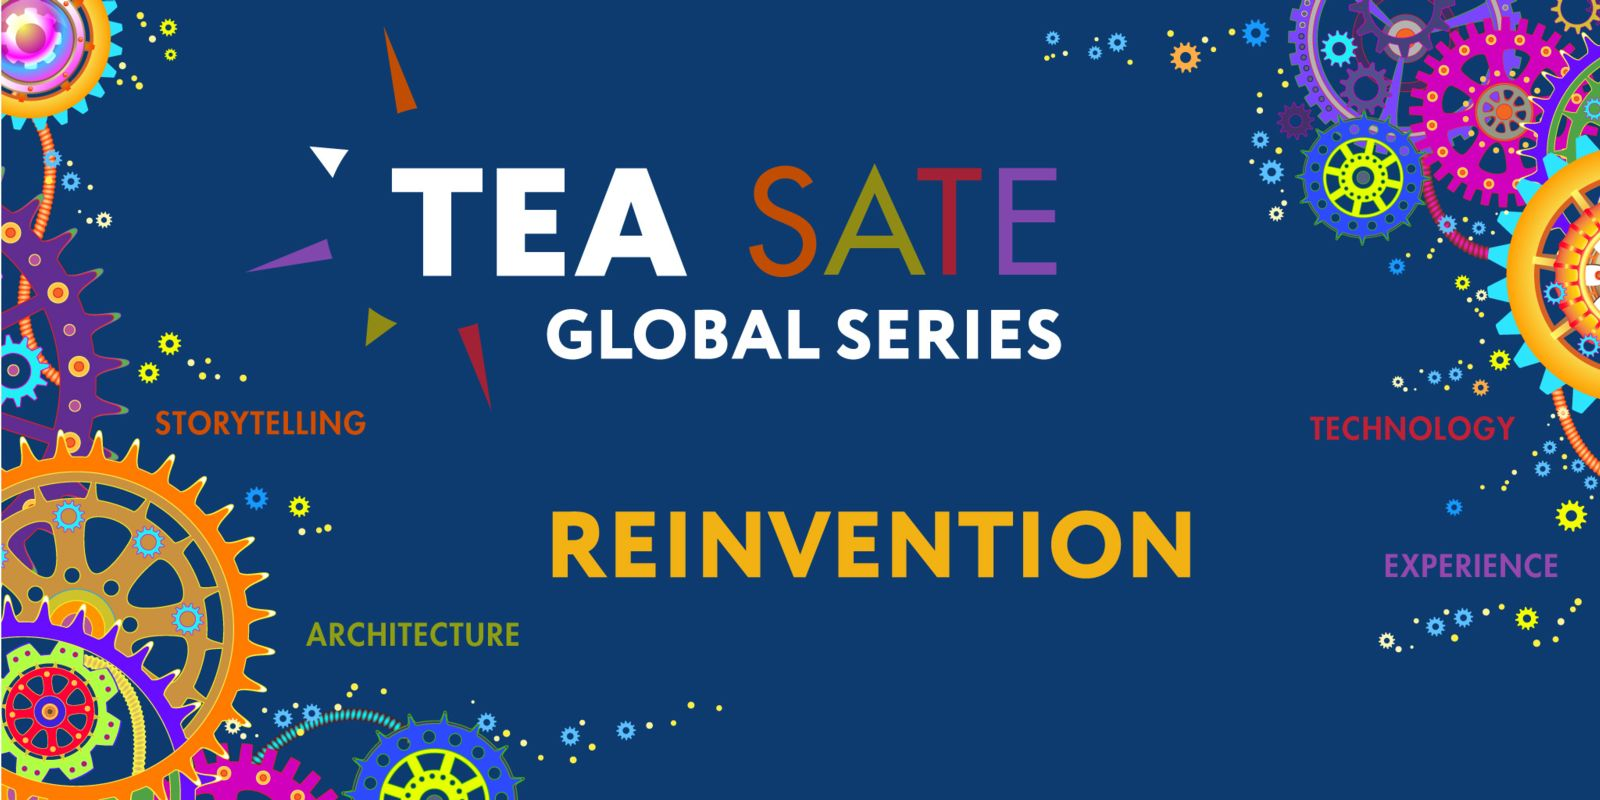 Episode 2 Speakers Announced for TEA SATE Global Series: REINVENTION presented by The Hettema Group